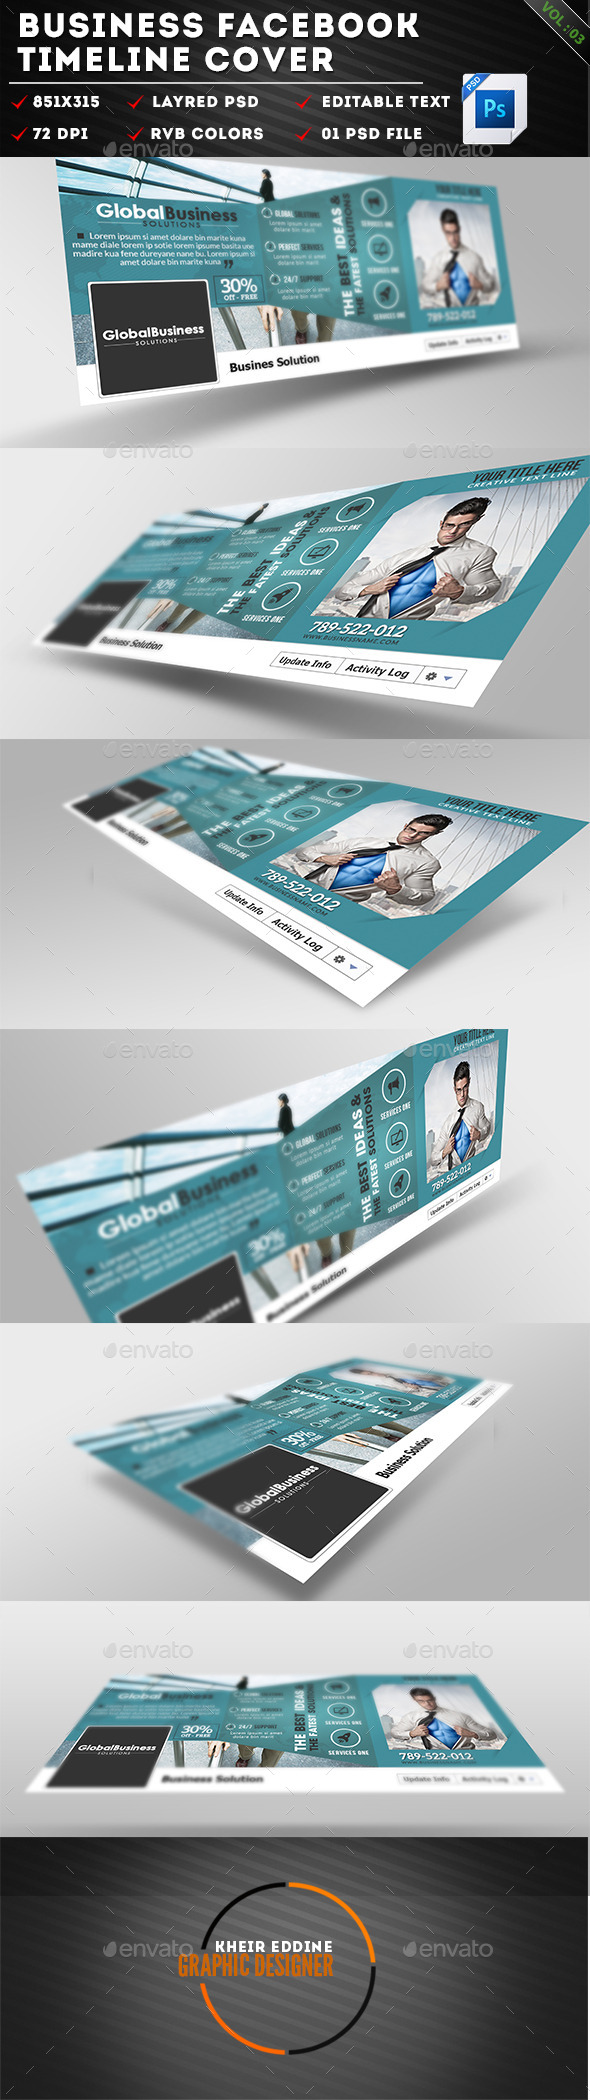 GraphicRiver Corporate Business Facebook Timeline Covers Vol 03 11370314